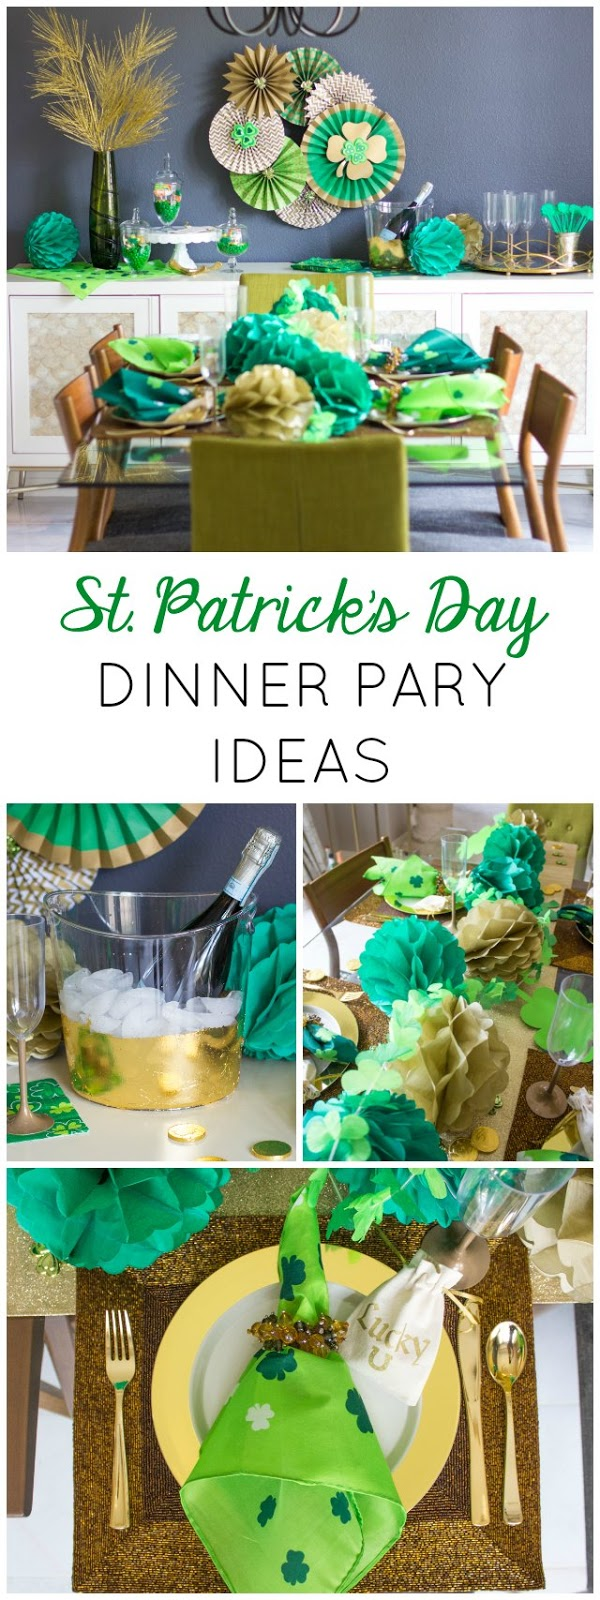 How to create an elegant, yet simple St. Patrick's Day dinner party!